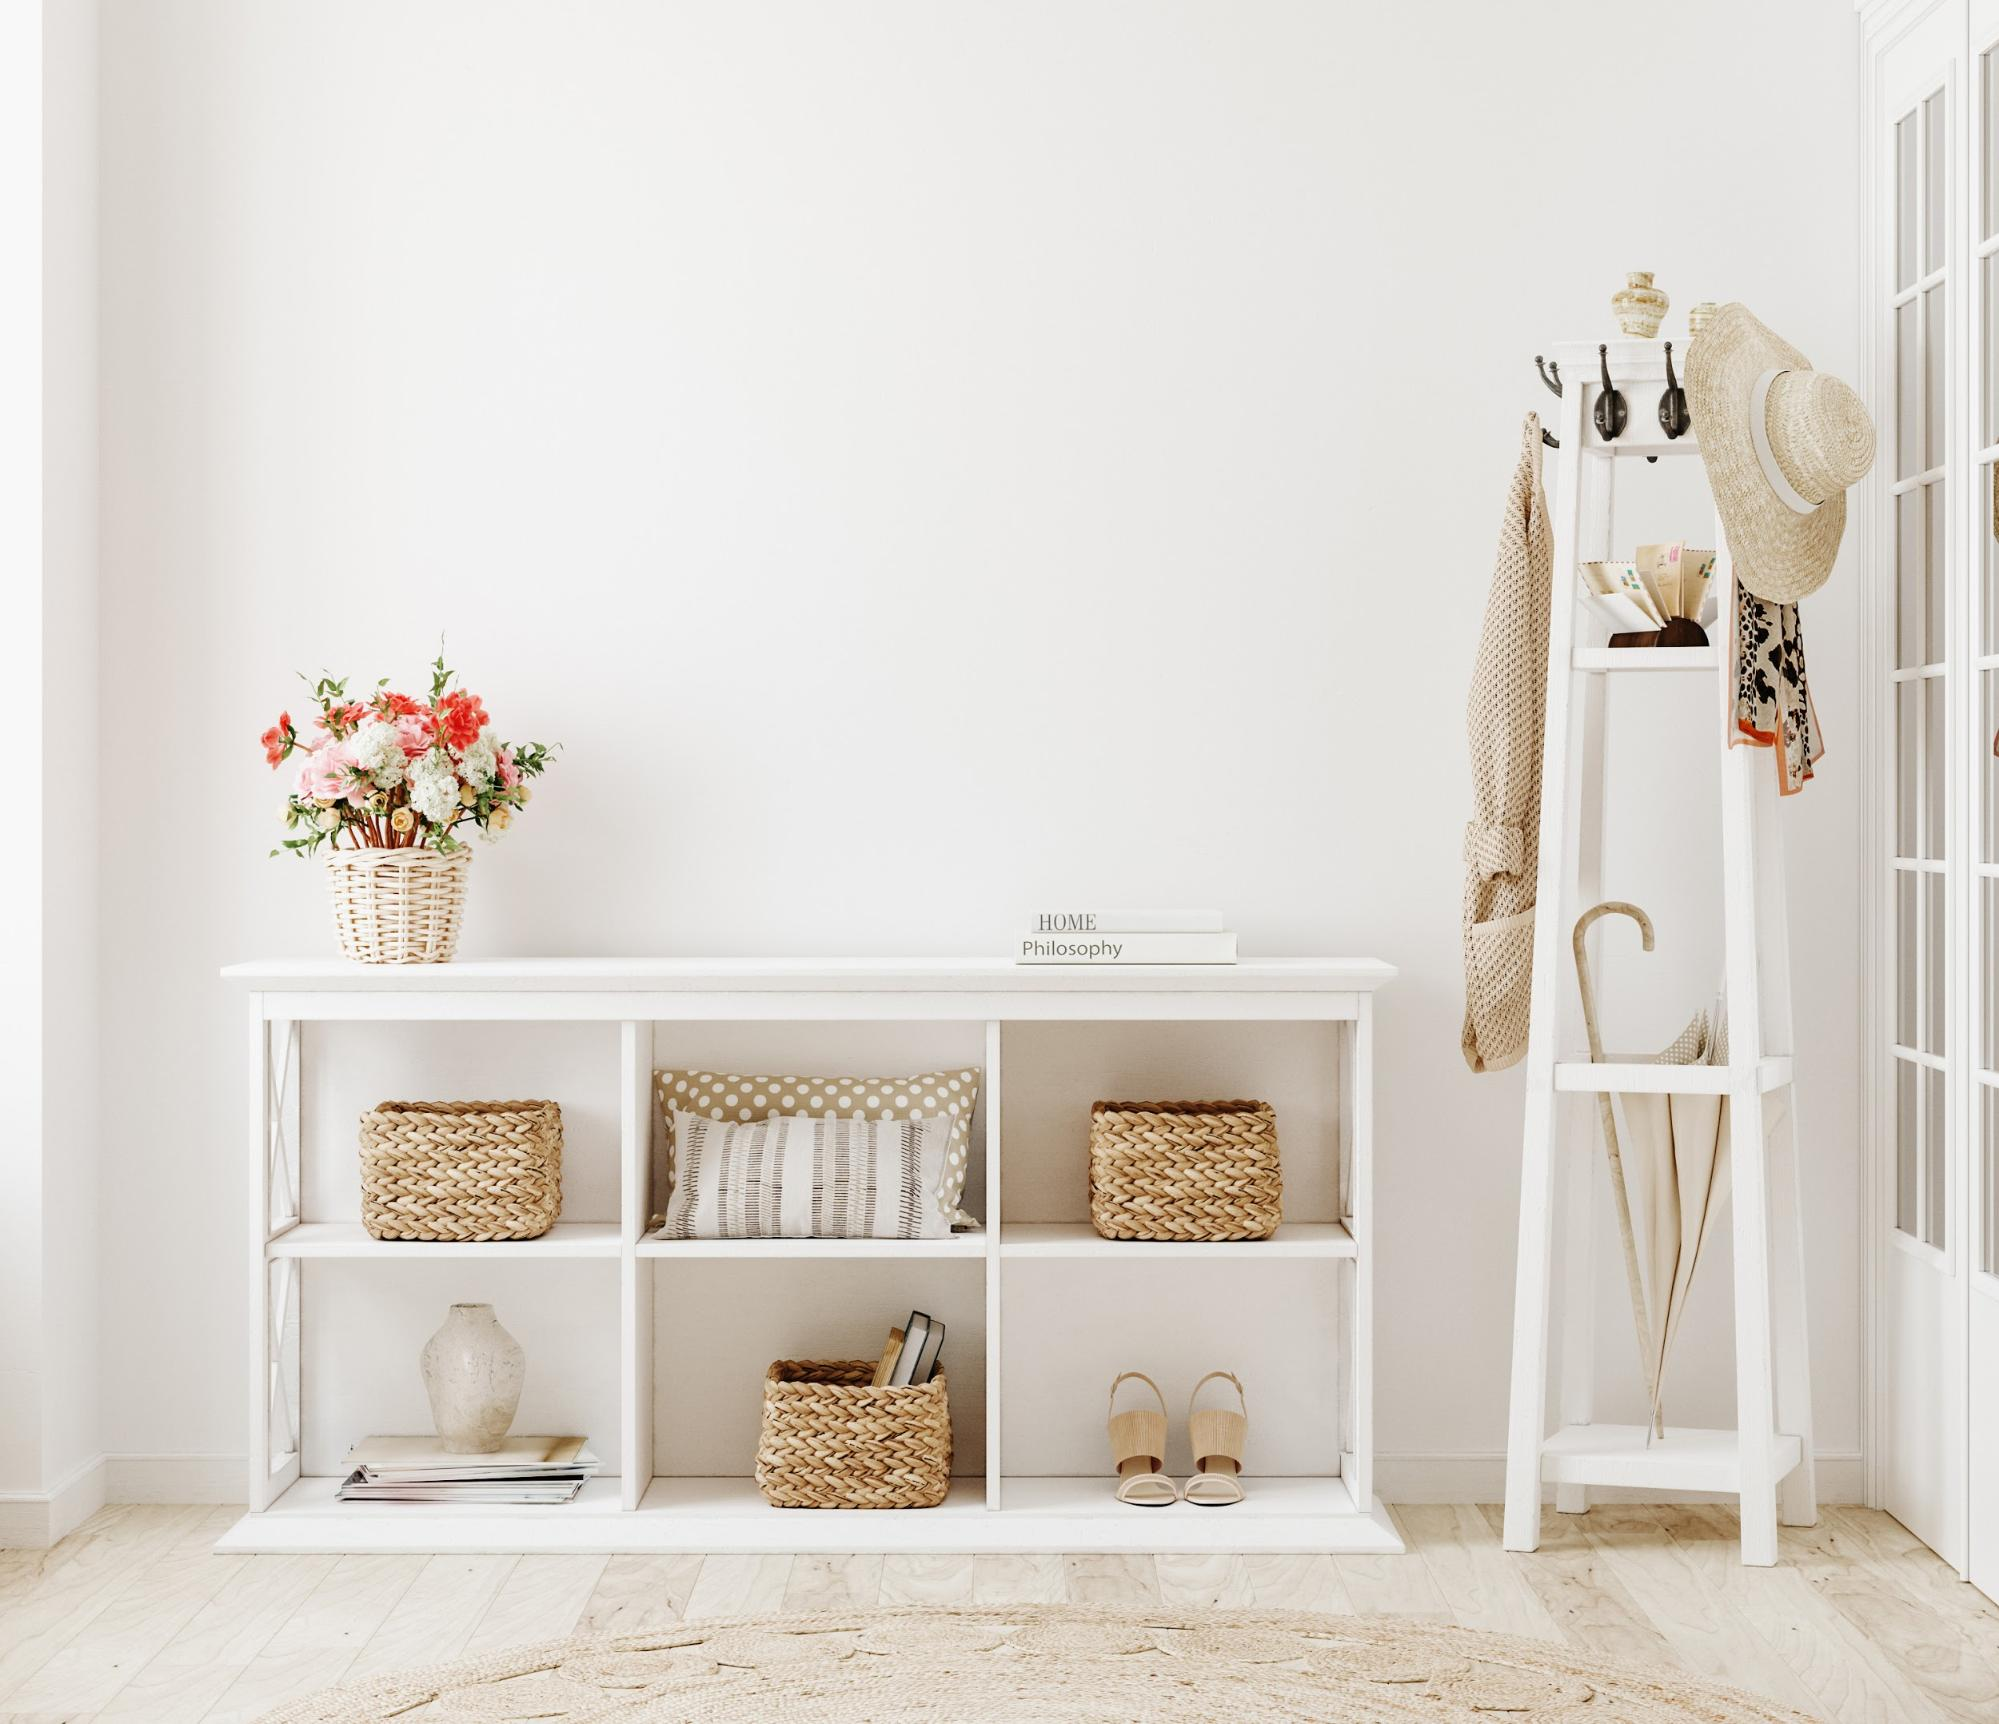 How to choose (and style) entryway furniture for your space